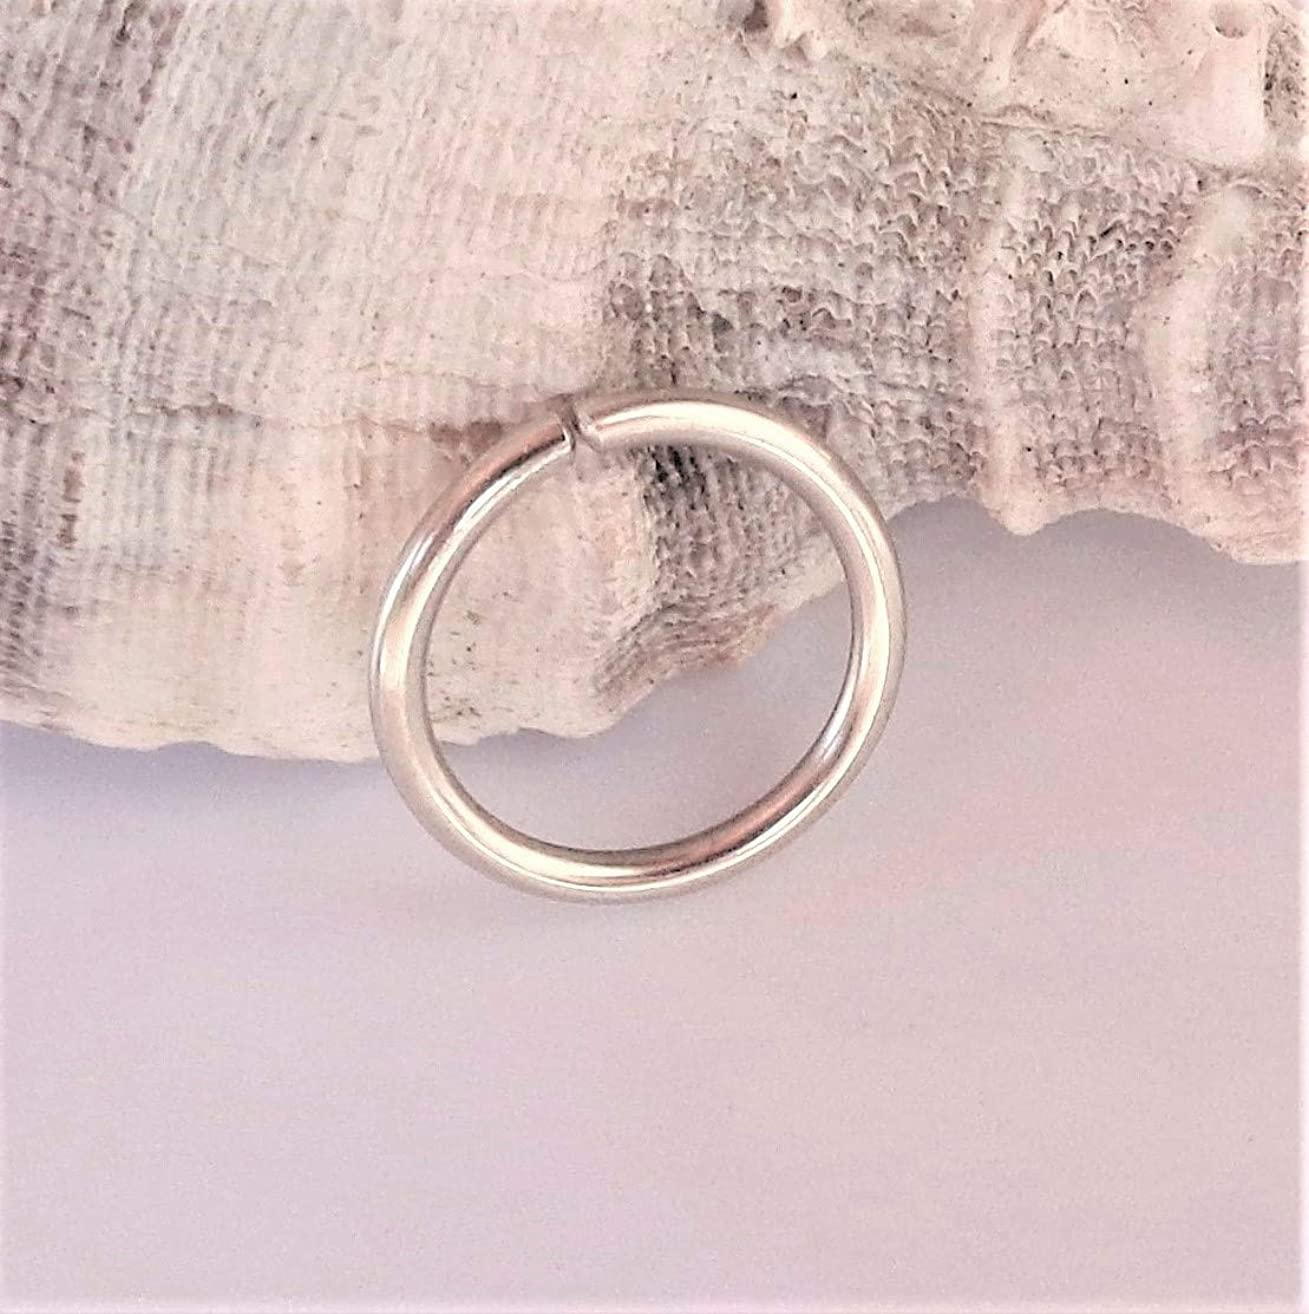 14K Solid White Gold Septum Ring,Nose Ring,Daith Piercing Ring,Cartilage,Helix,Tragus,Ear Hoop Earring